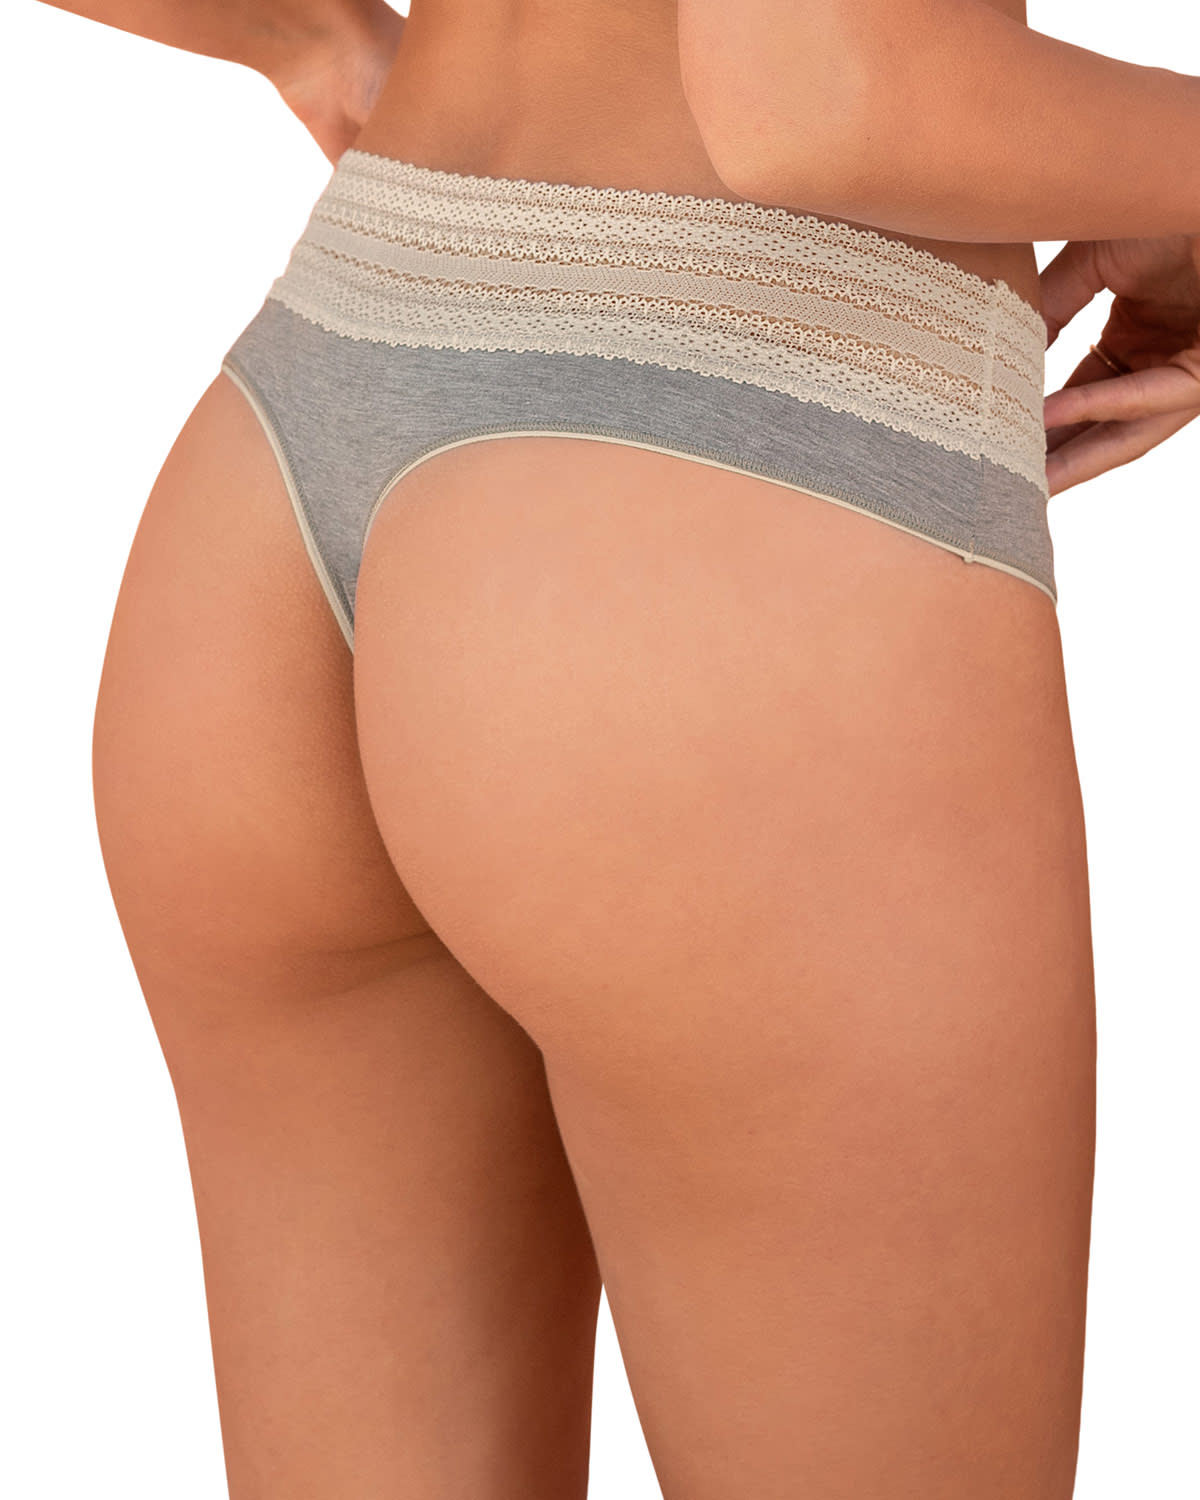 Comfy Thong Panty with Lace Trim - Cotton Blend